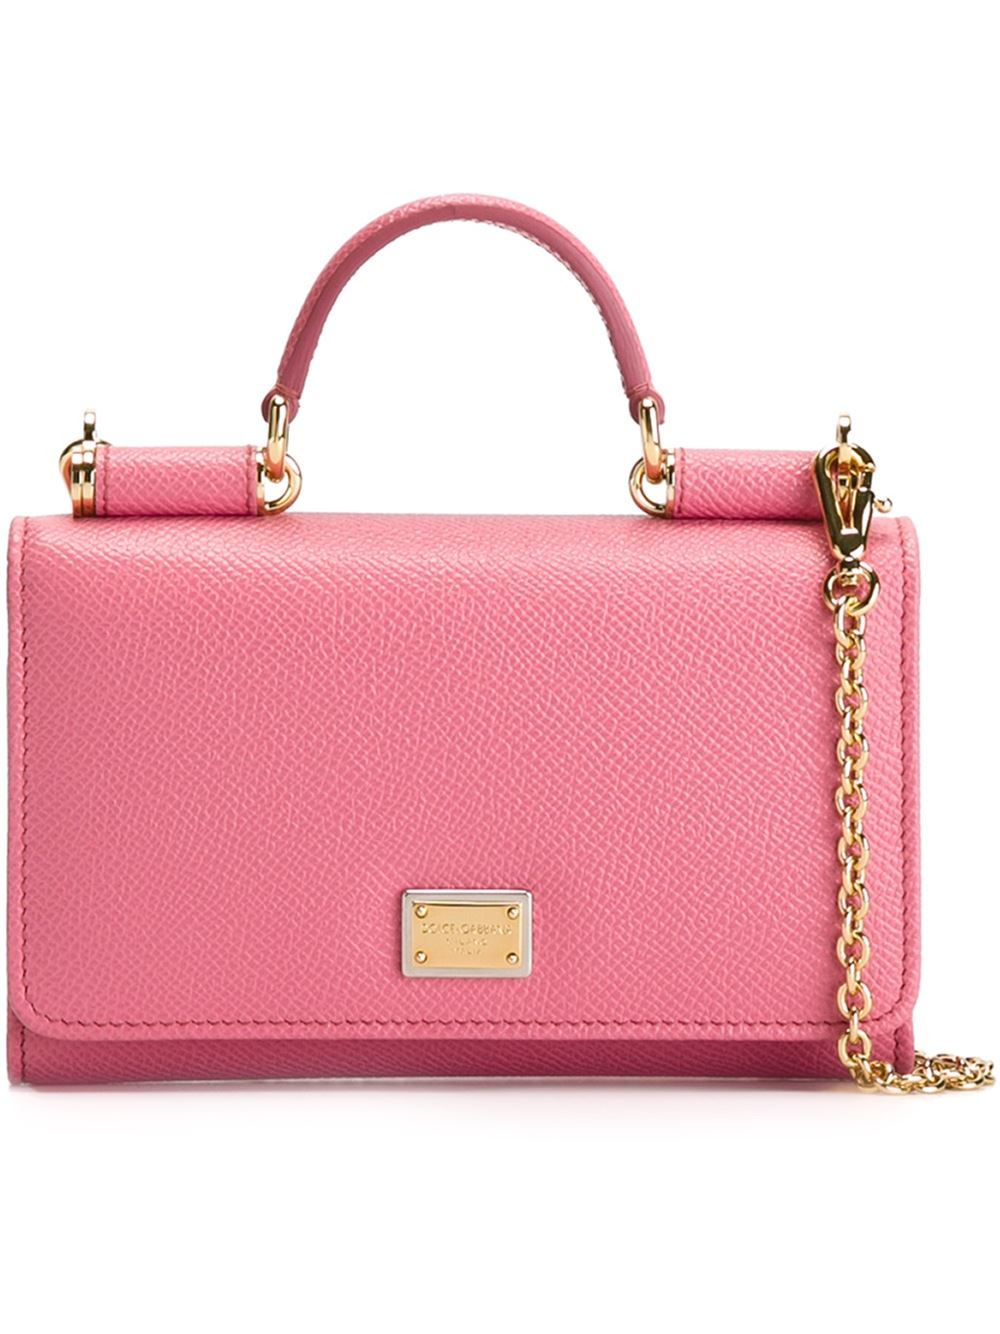 1182547644 Dolce   Gabbana Mini Phone Bag With Chain in Pink - Lyst